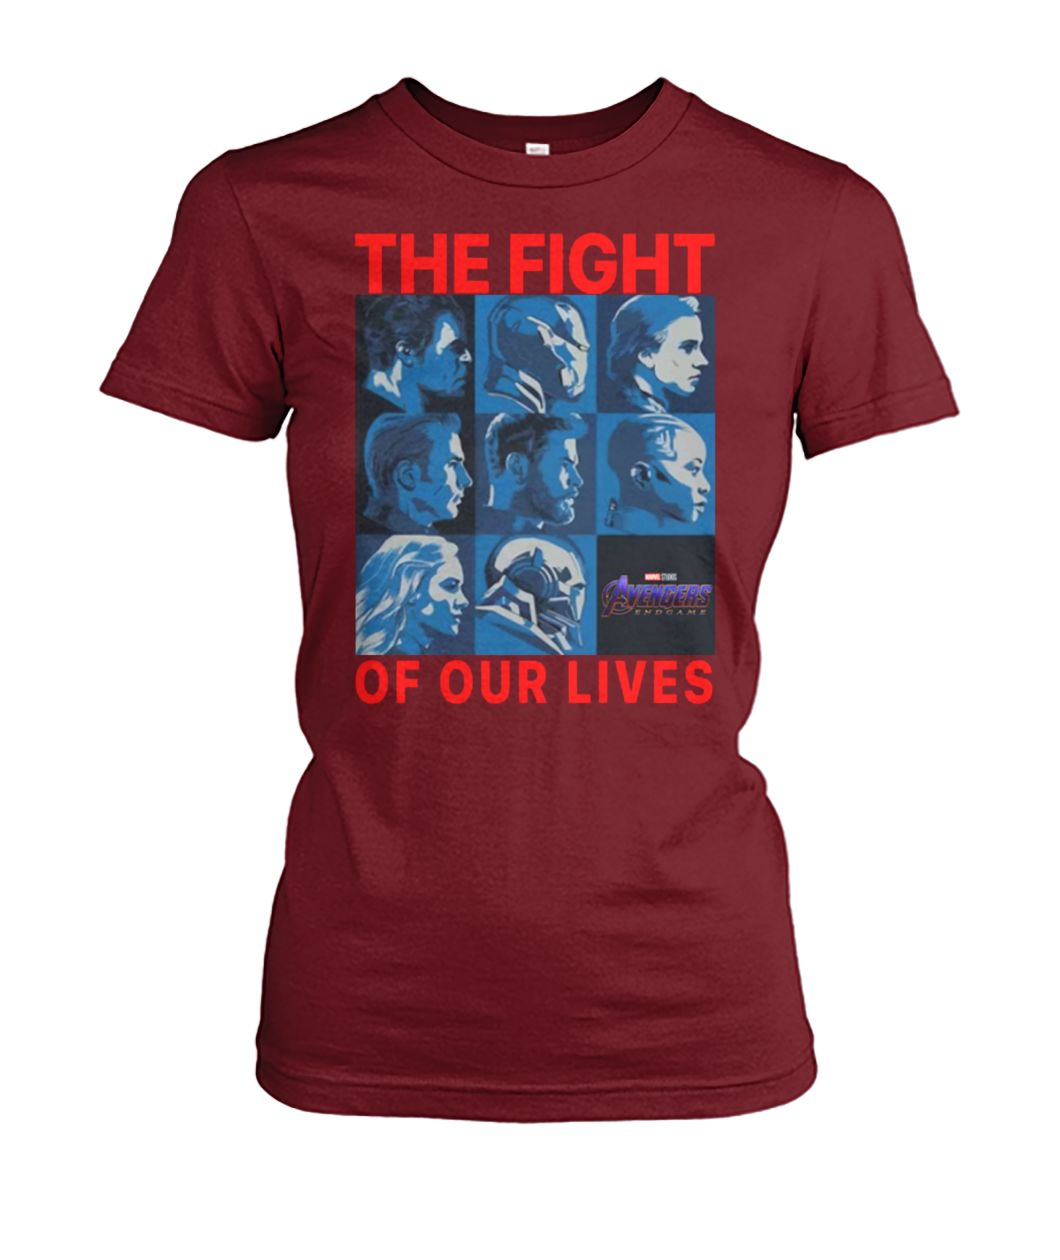 Avengers endgame the fight for our lives women's crew tee